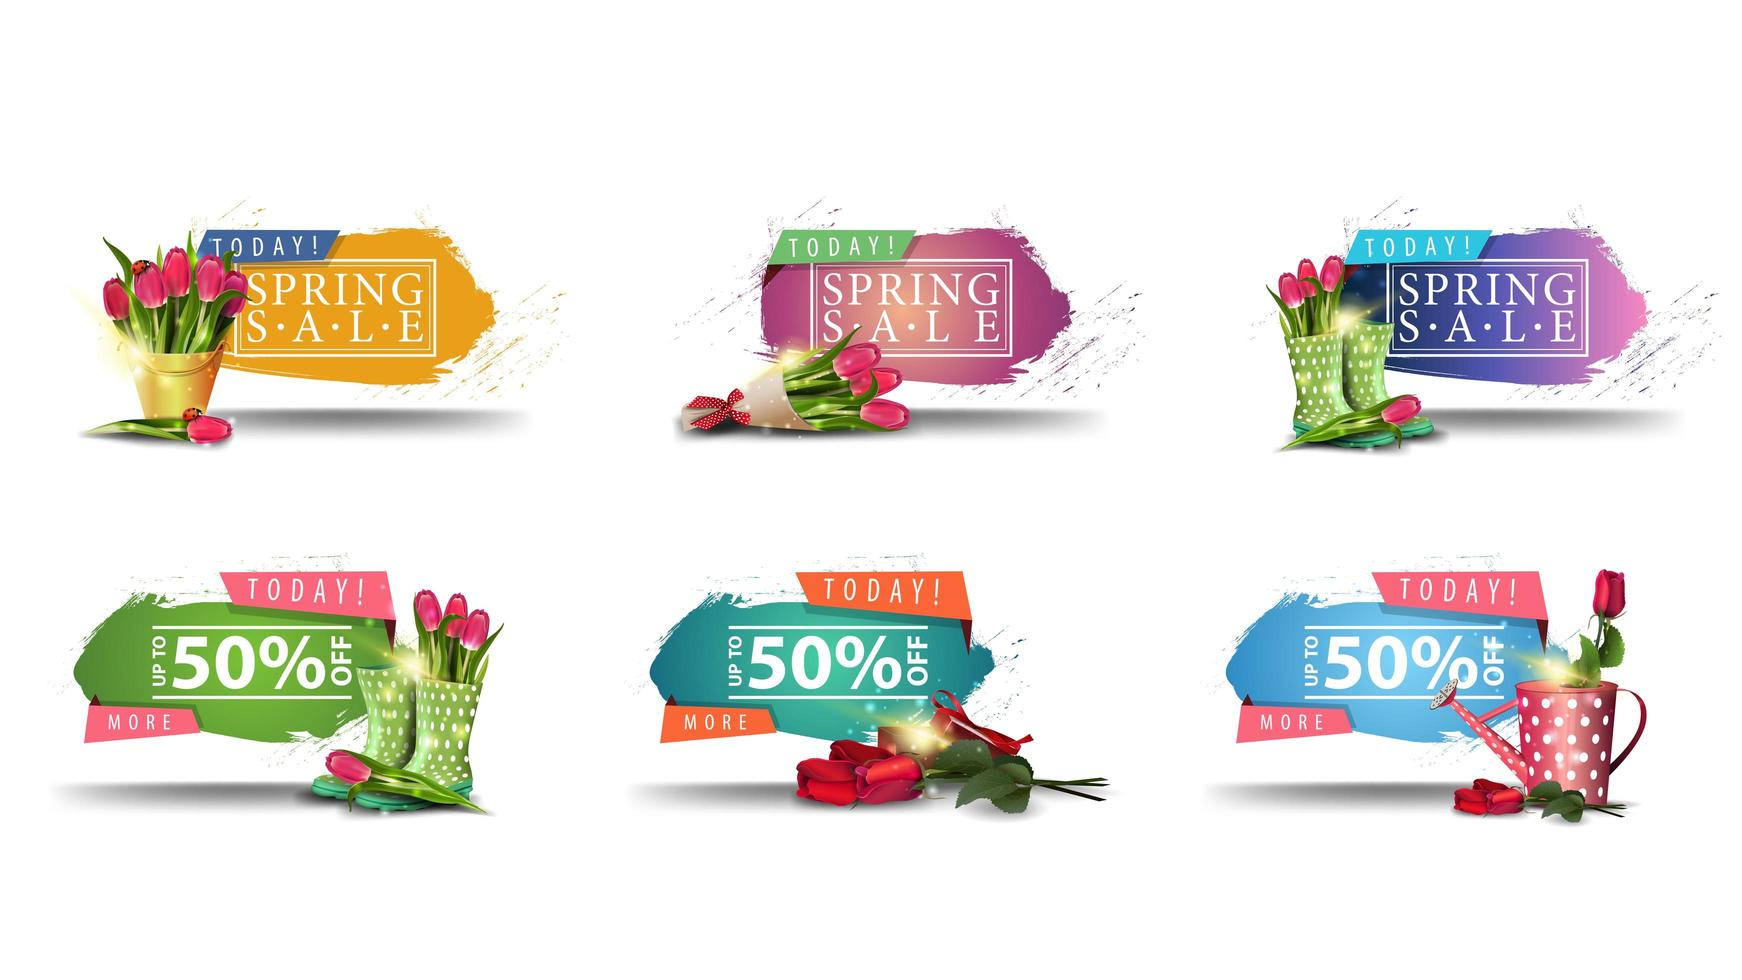 Spring sale banners with ragged edges and flowers vector